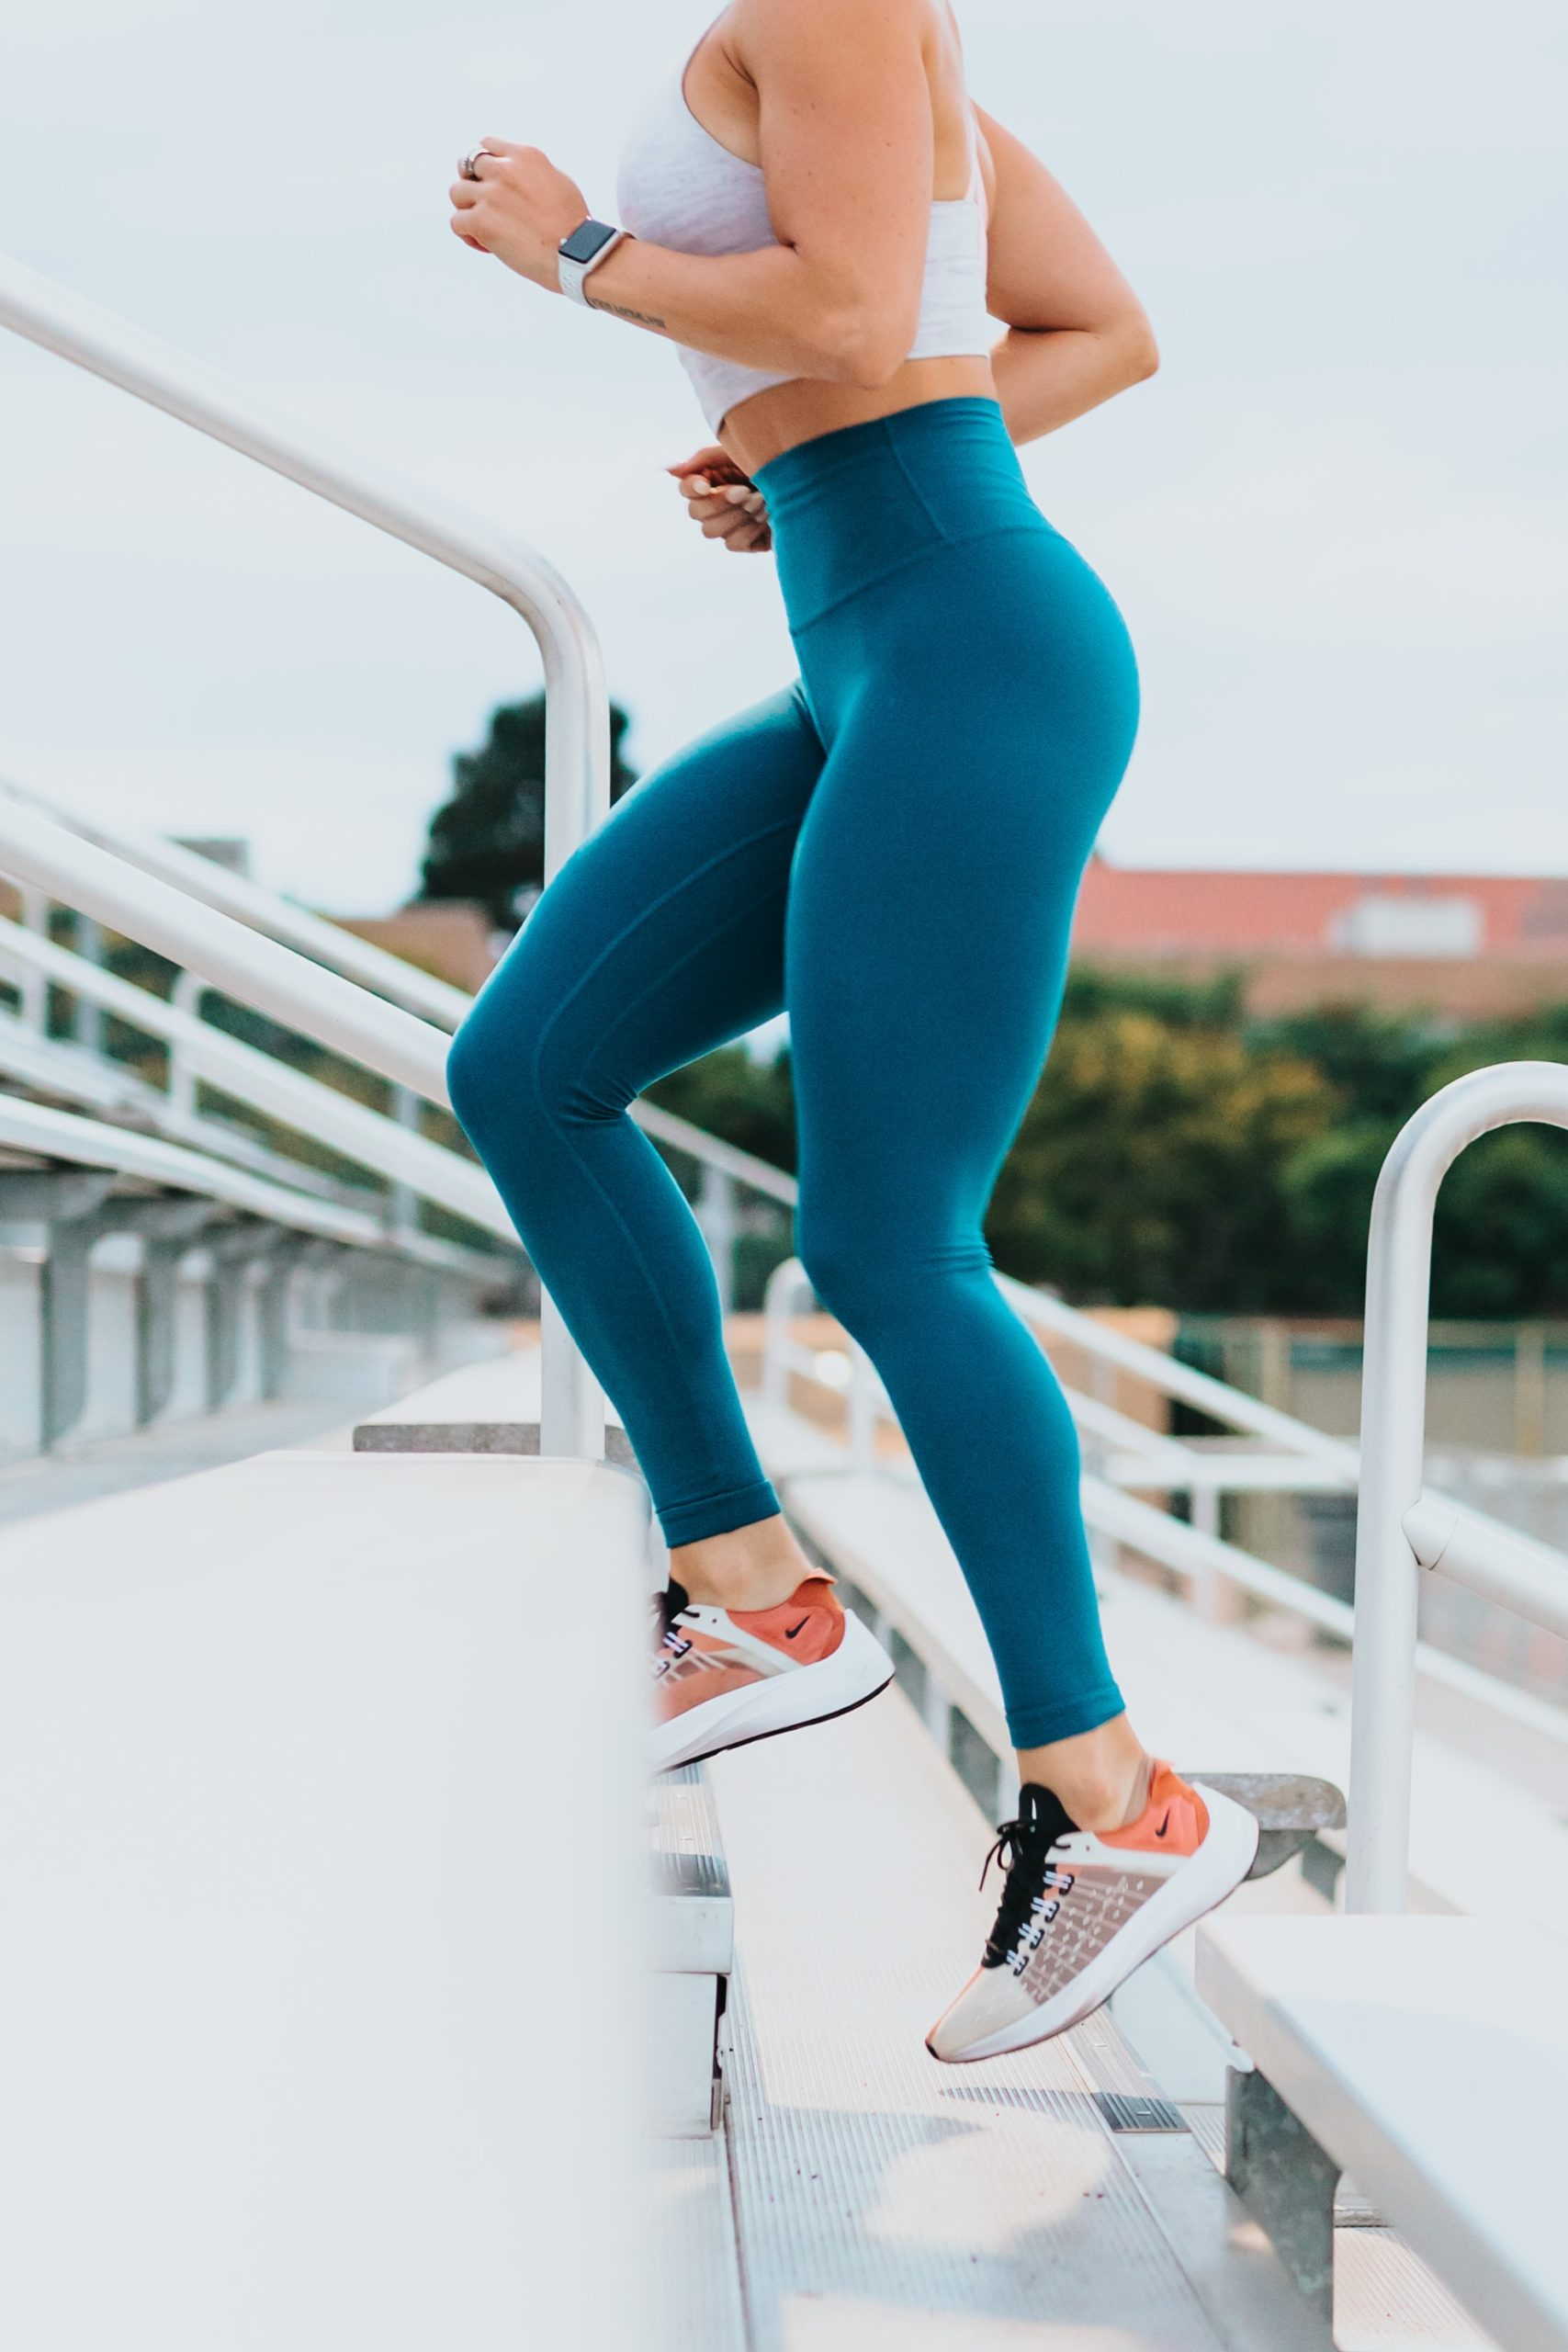 woman running up stadium stairs outside